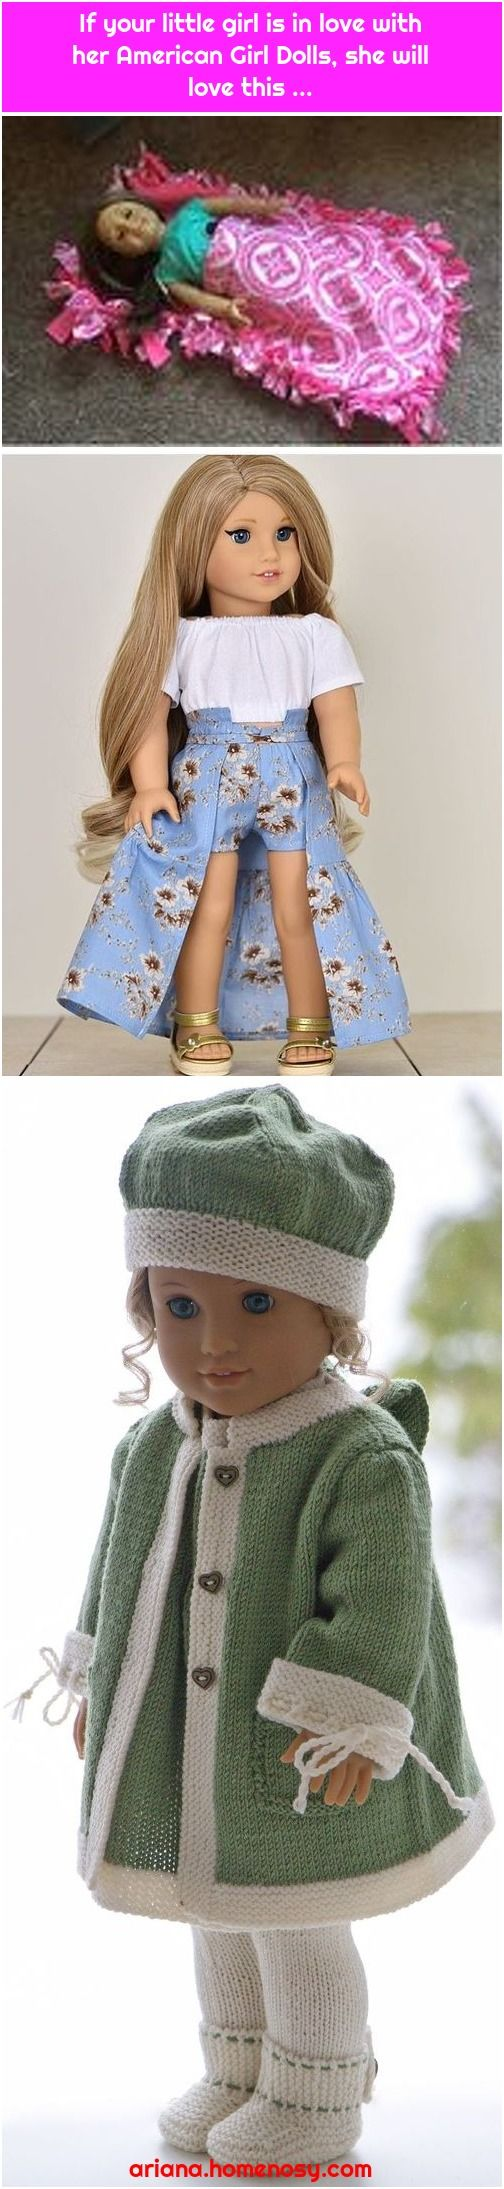 If your little girl is in love with her American Girl Dolls, she will love this ...